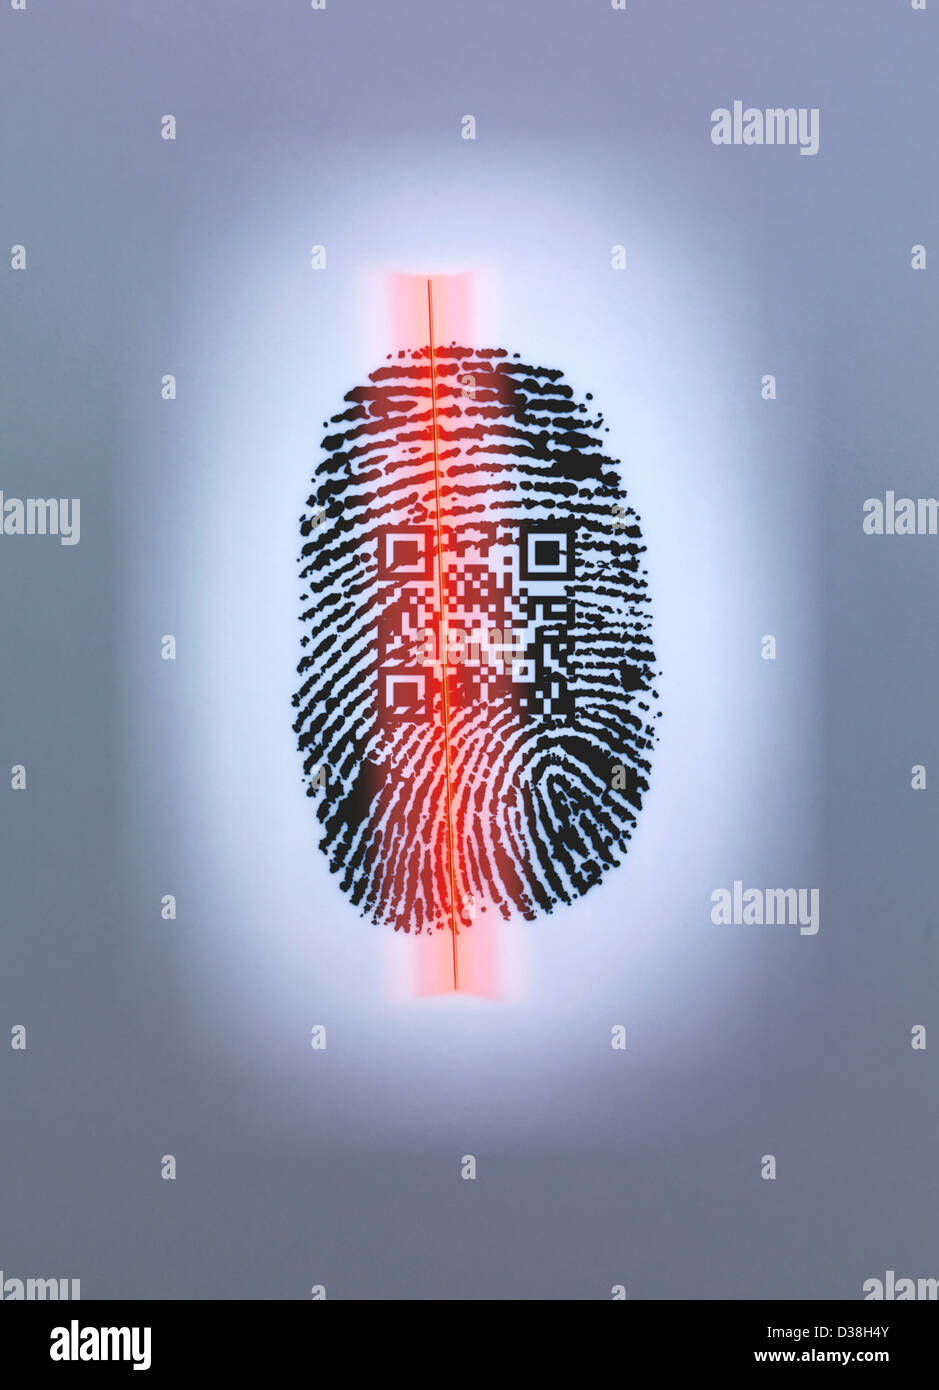 Fingerprint und QR Code Scanner Stockfoto